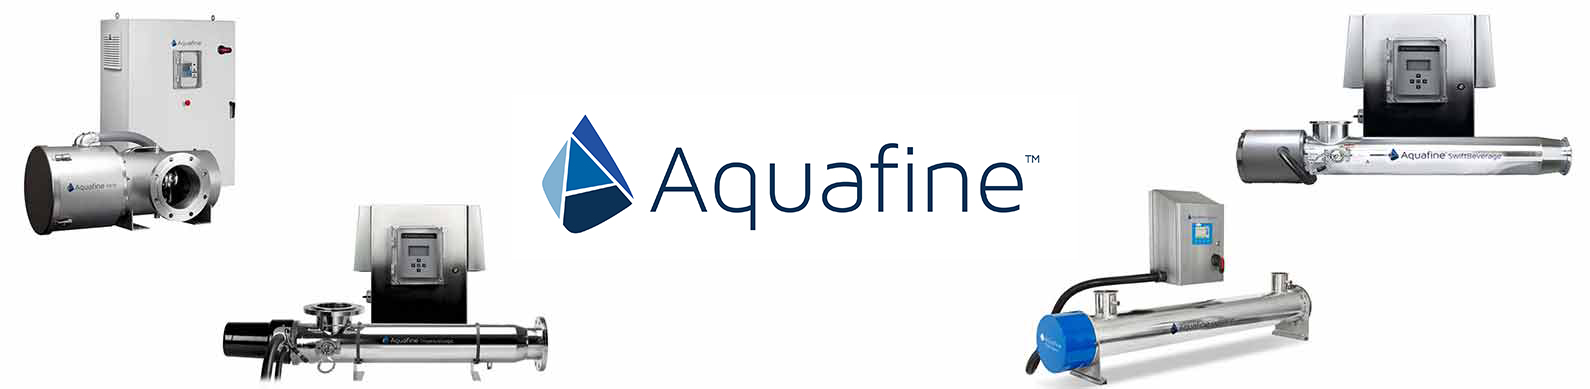 aquafine-banner-new.jpg